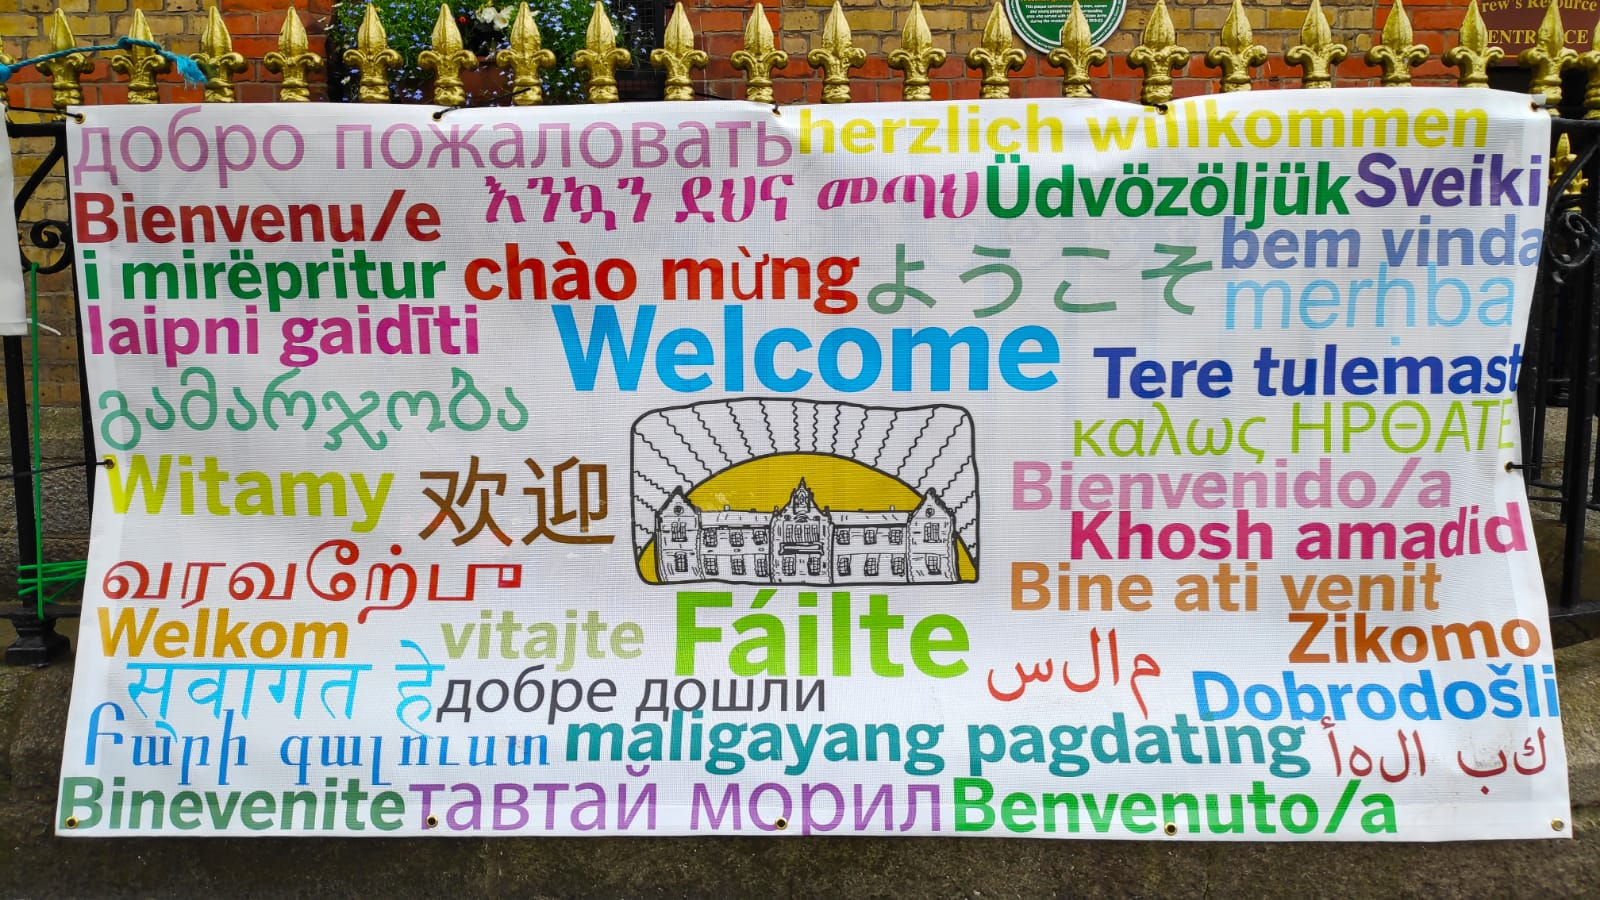 Welcome-in-all-languages-to-all-at-our-market-in-St-Andrew's-Reource-centre-pearse-st-dublin-city